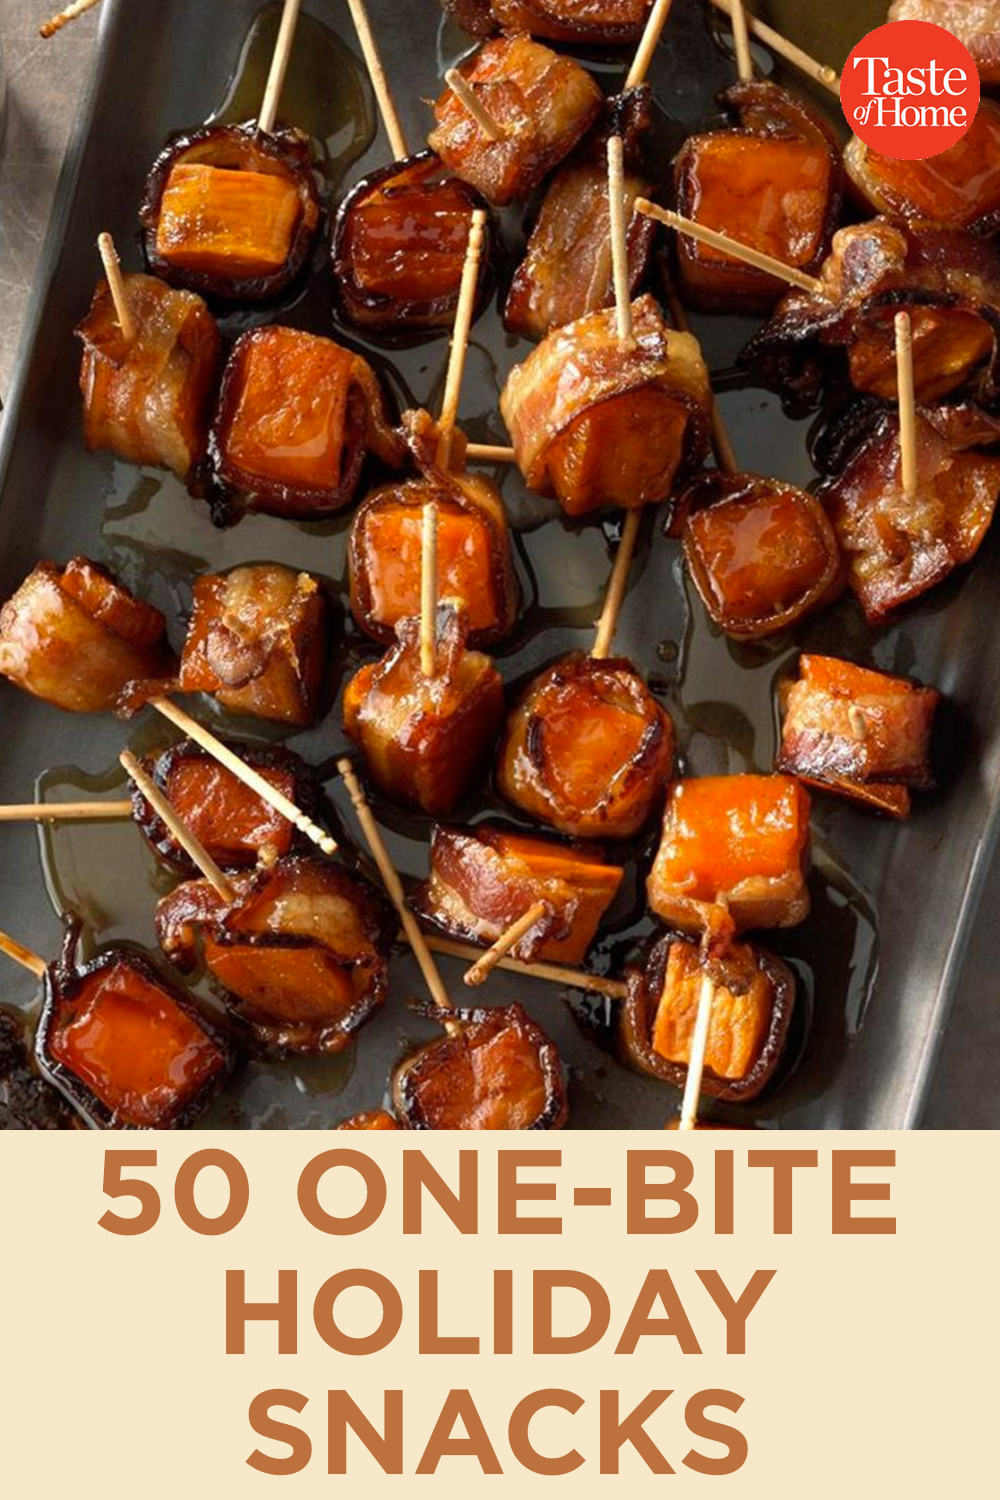 50 One-Bite Holiday Snacks